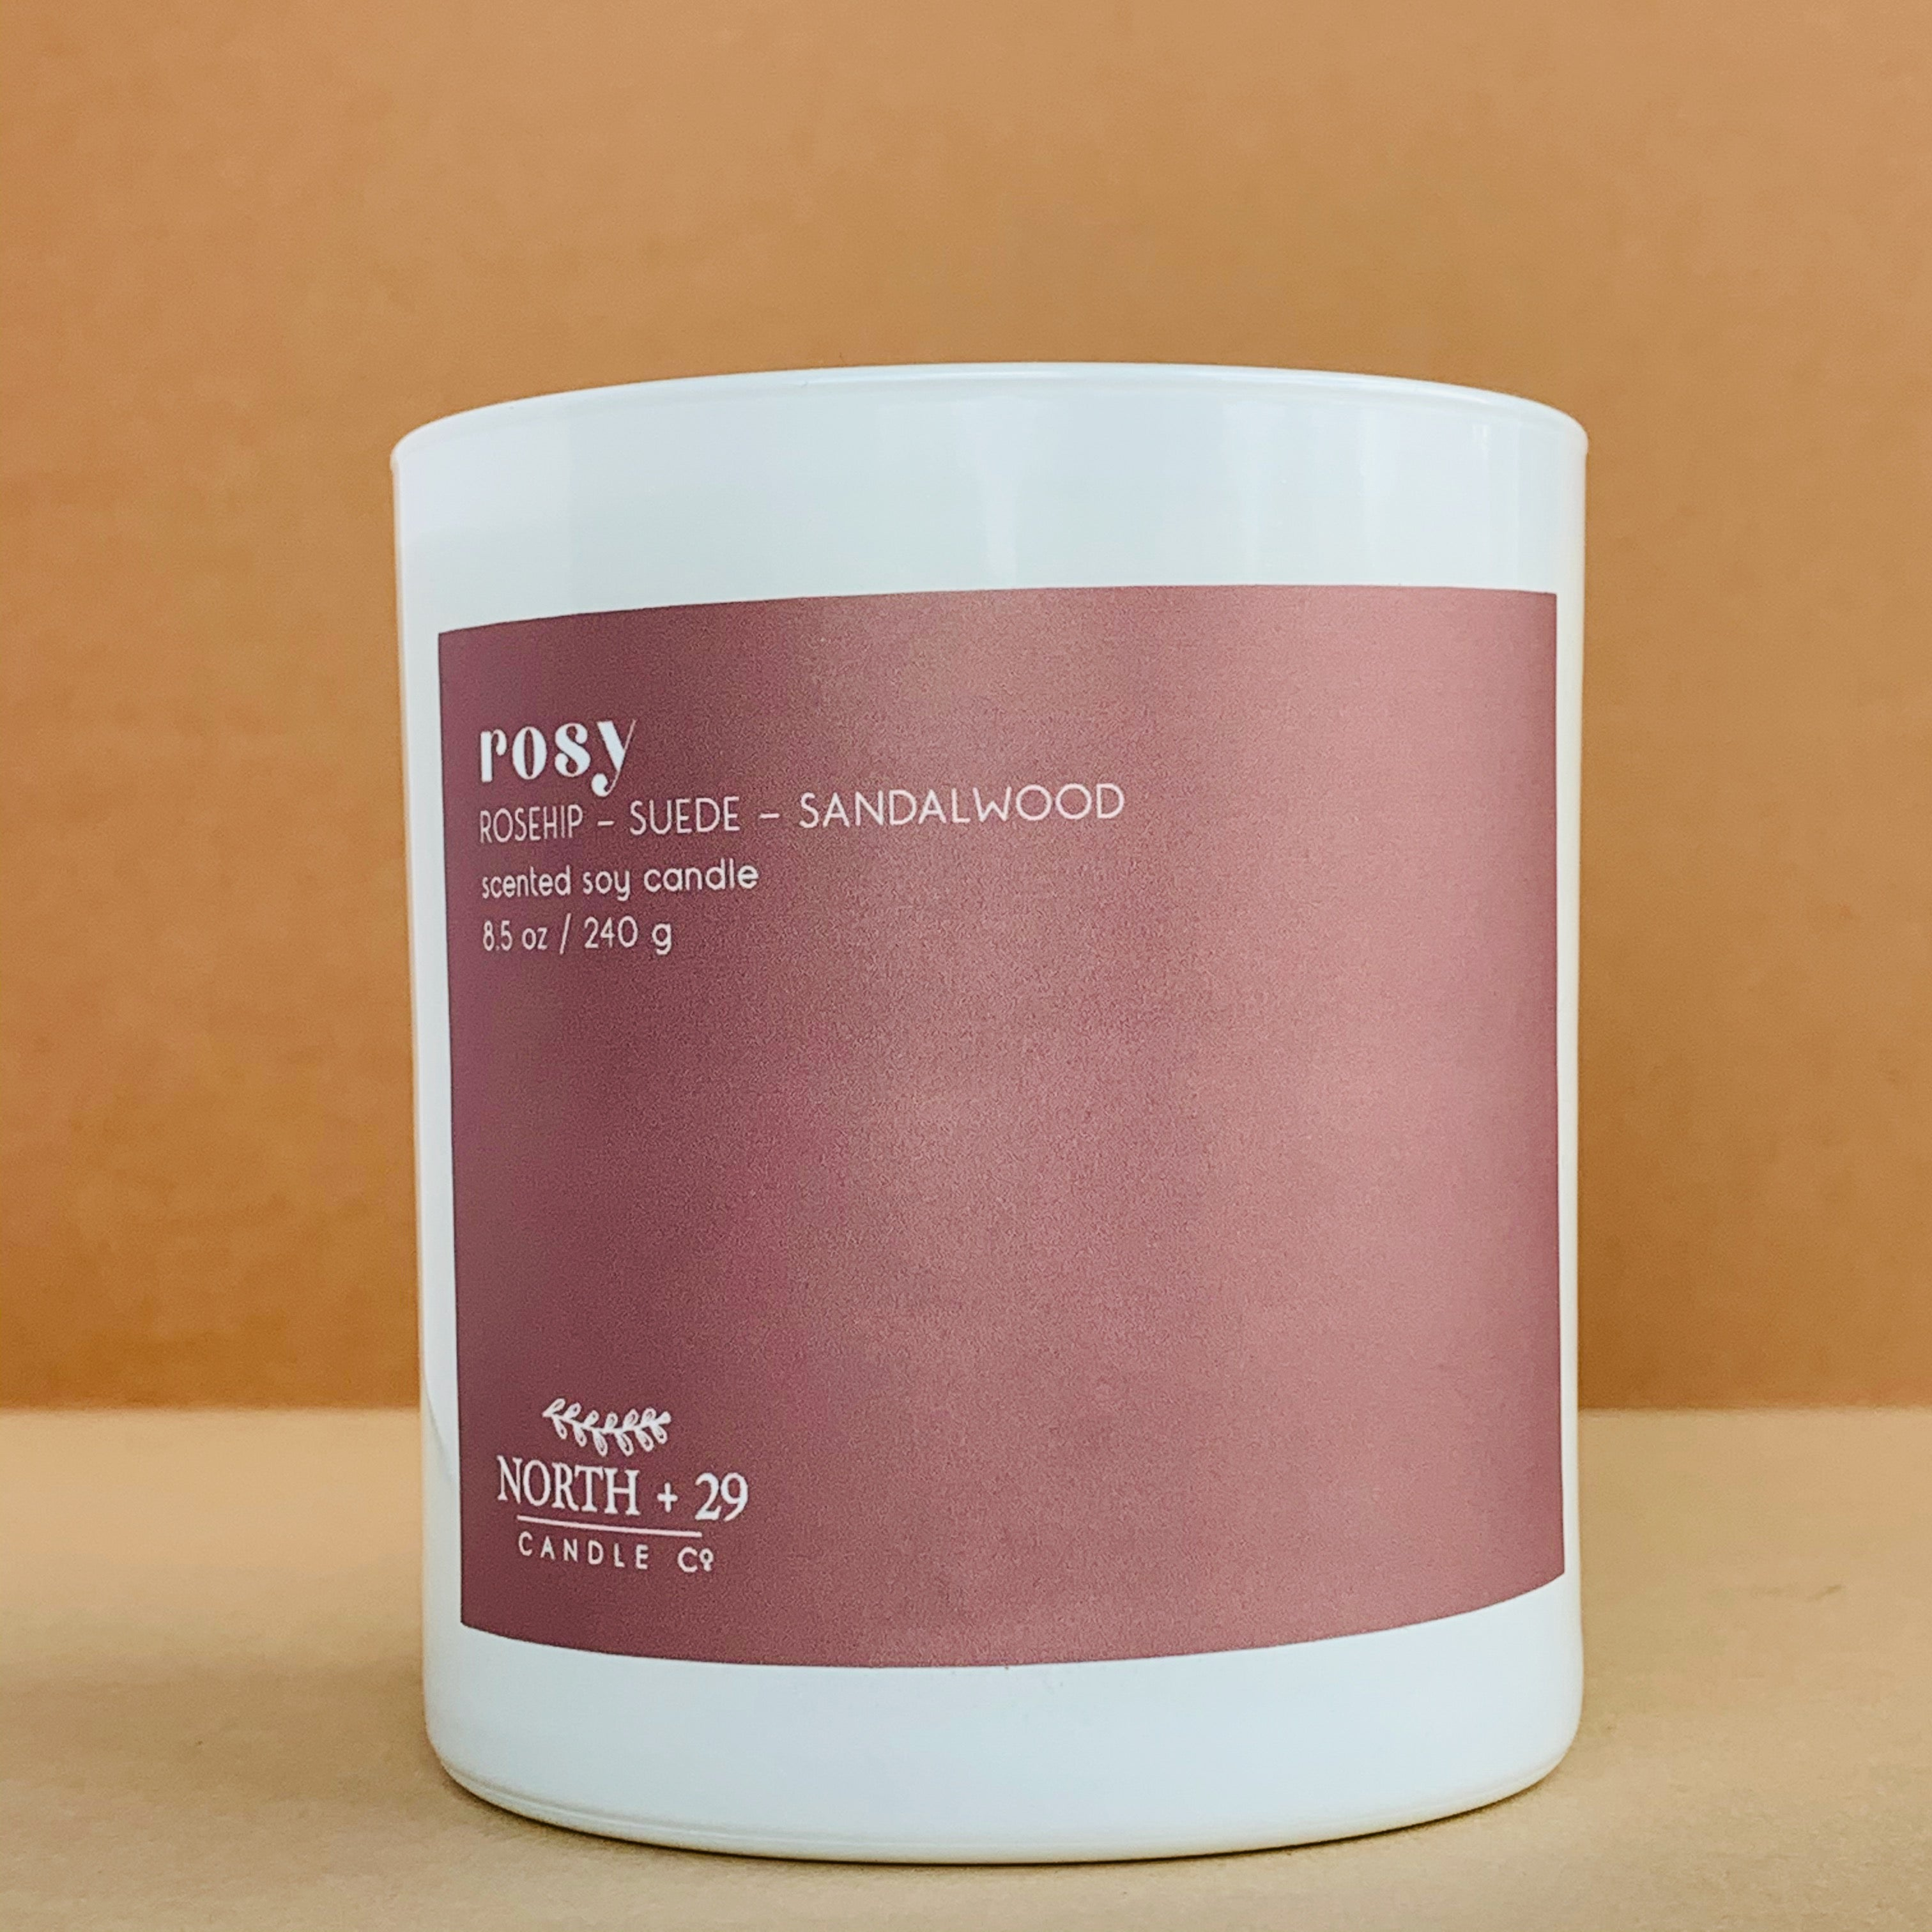 Rosy Soy Candle